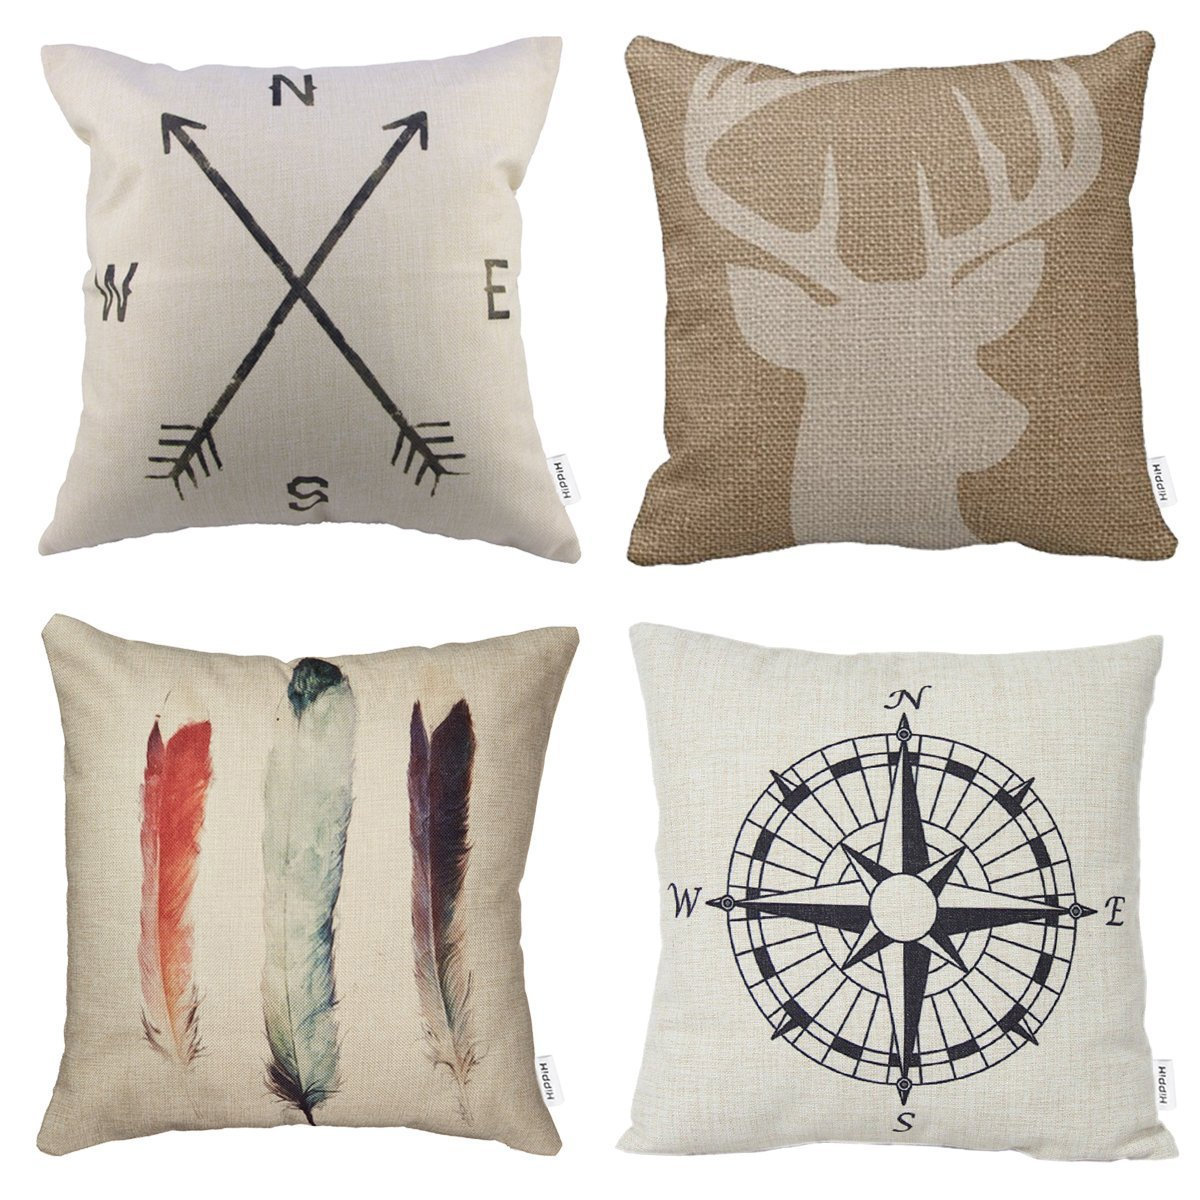 Superior 4 Packs Hippih Cotton Linen Sofa Home Decor Design Throw Pillow Case  Cushion Covers 18 X 18 Inch ,1x Deer Antlers + 1x Feathers + 1x Compass +  1x Navigation ...